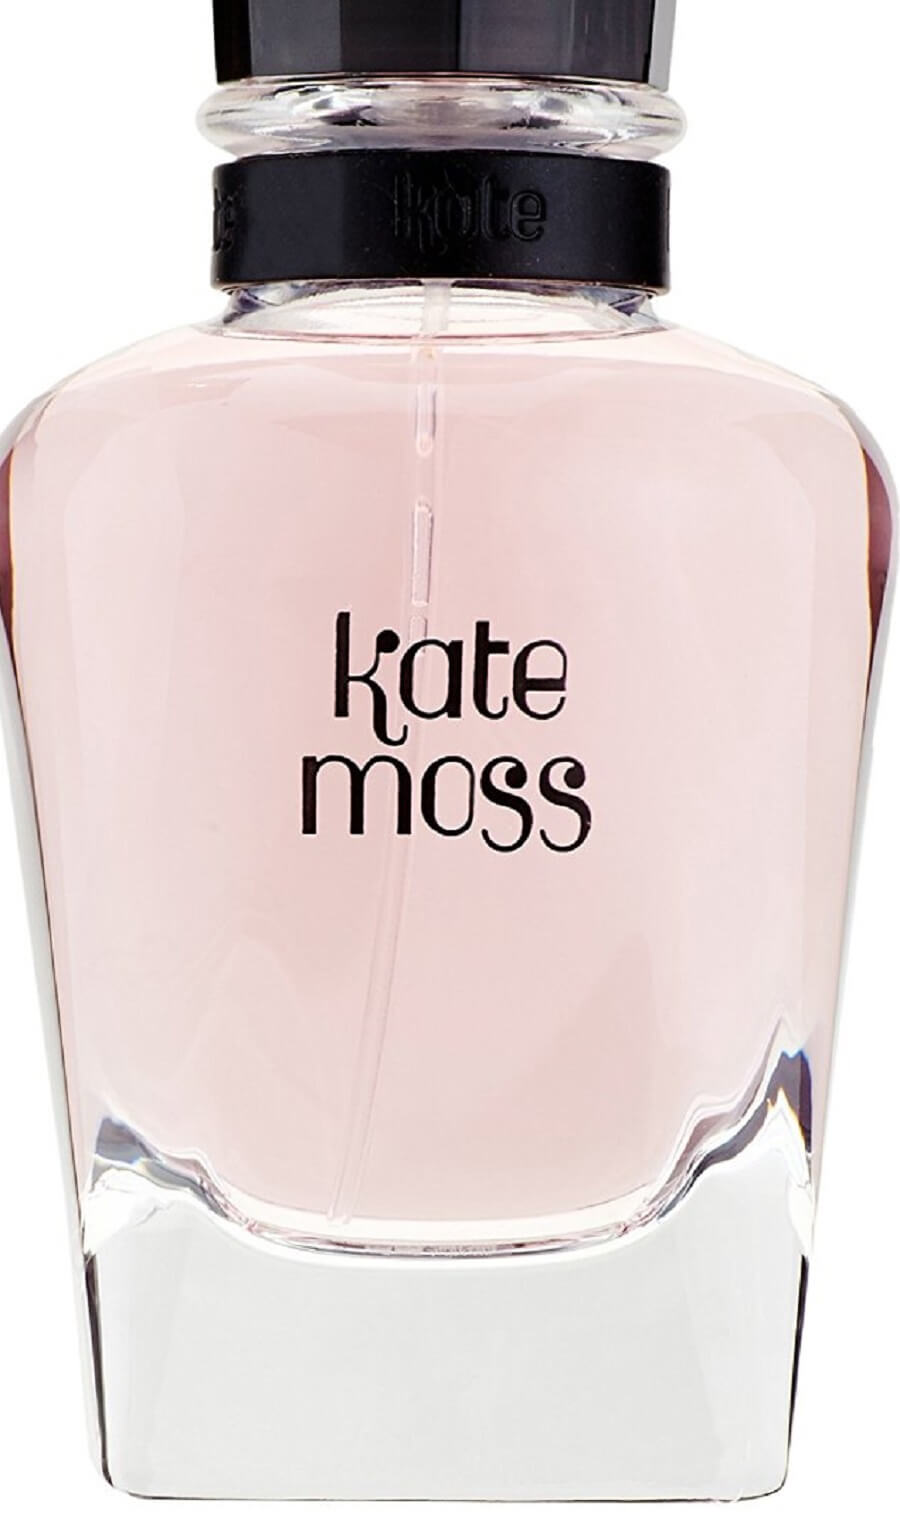 First Launched Kate Moss Perfume